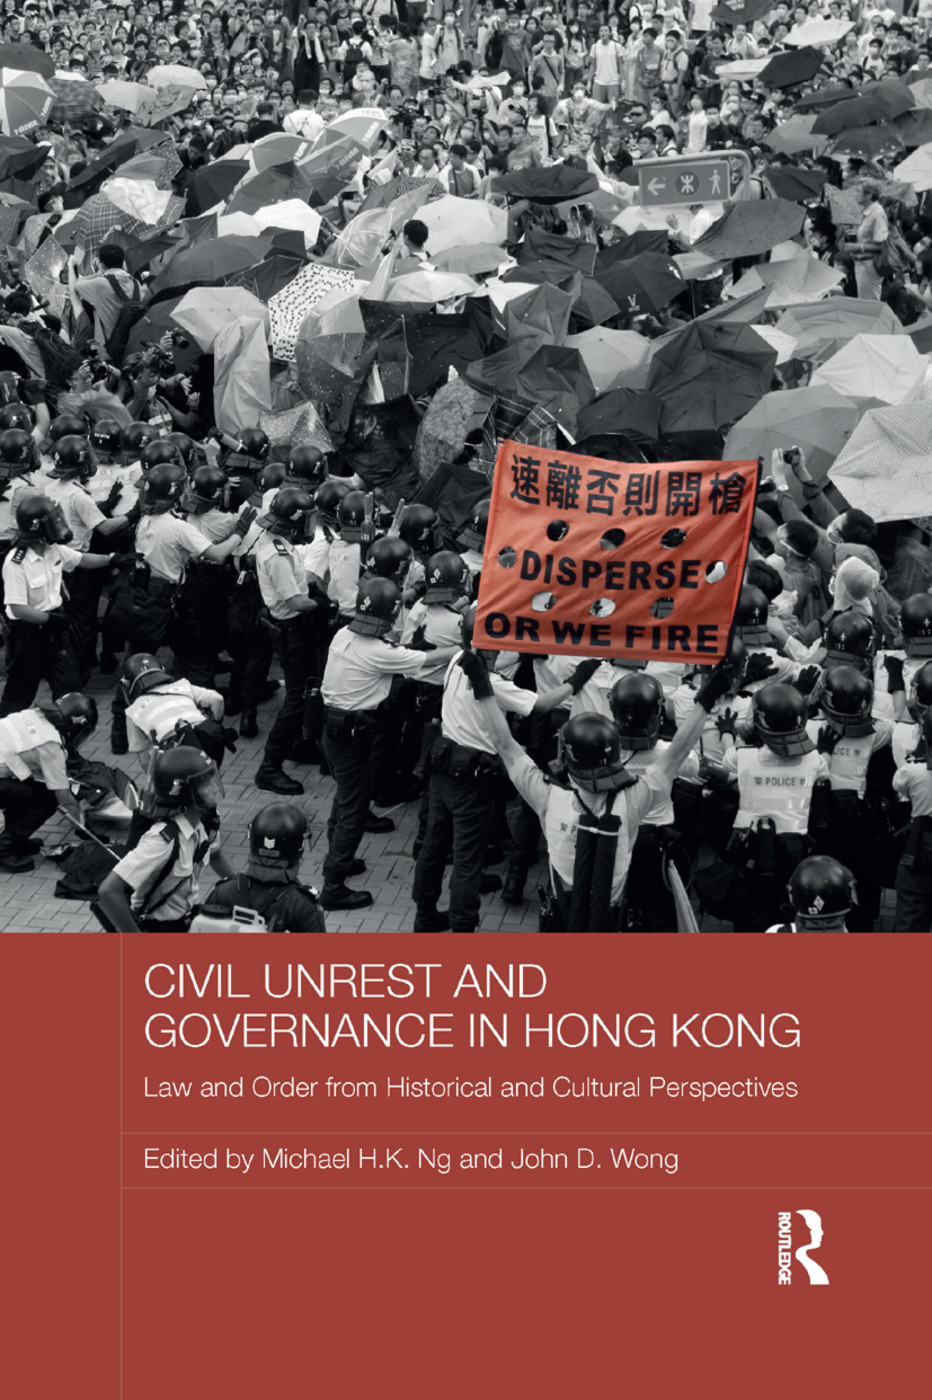 Civil Unrest and Governance in Hong Kong: Law and Order from Historical and Cultural Perspectives book cover